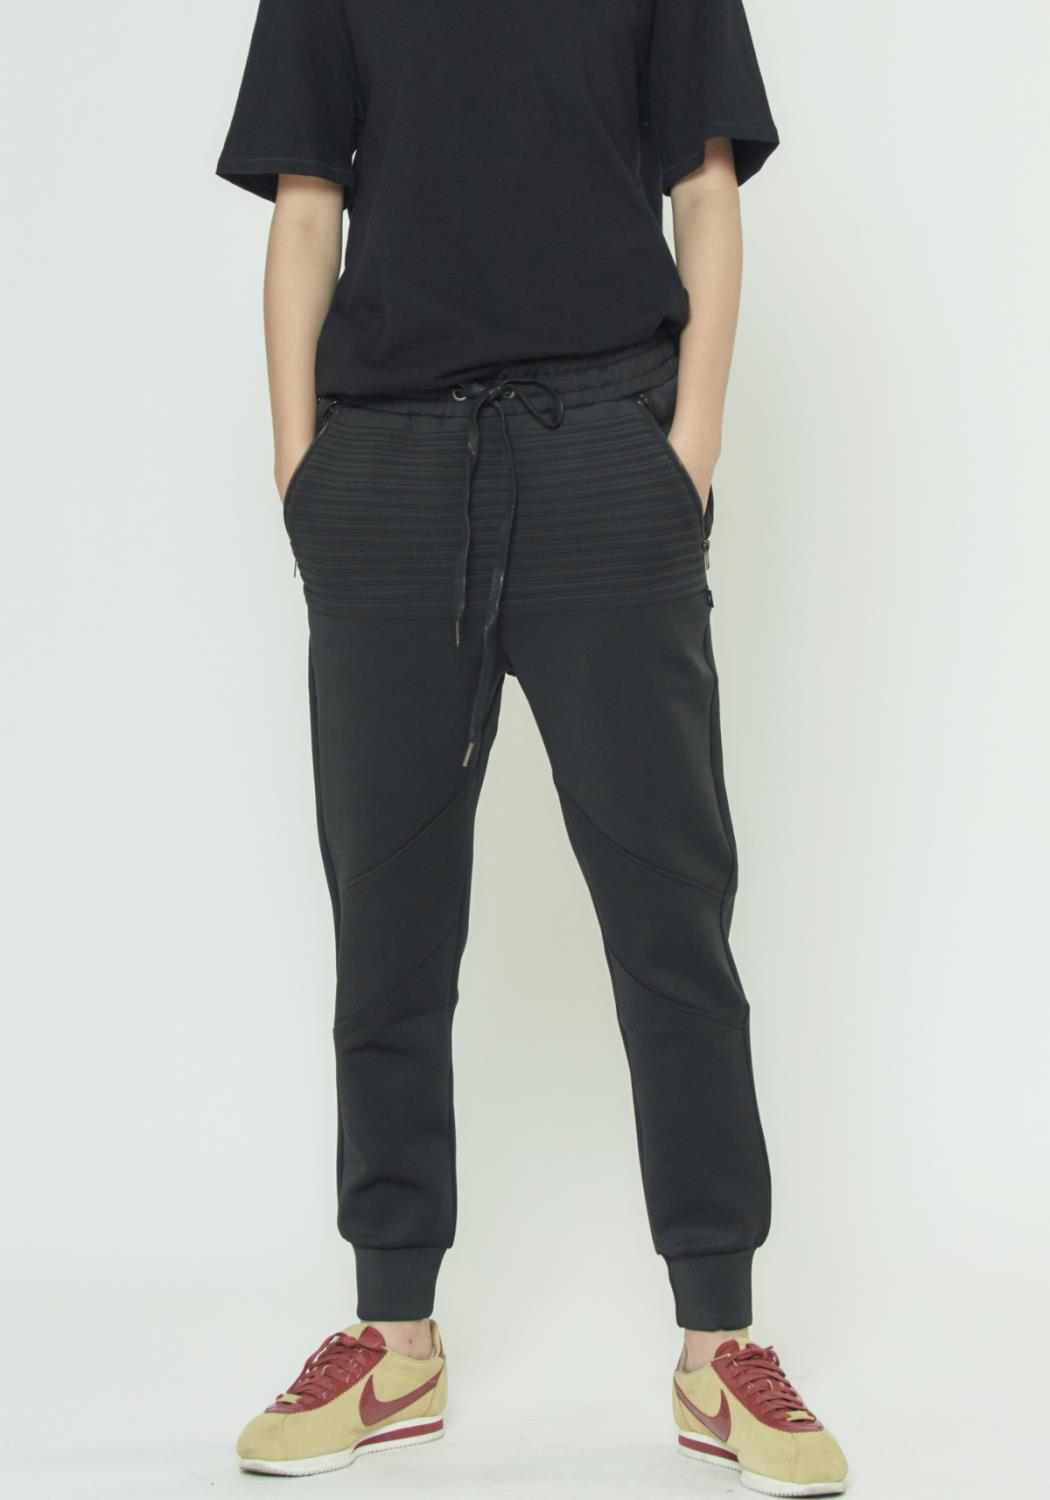 MENS TRACK PANTS WITH PIN TUCK DETAILS